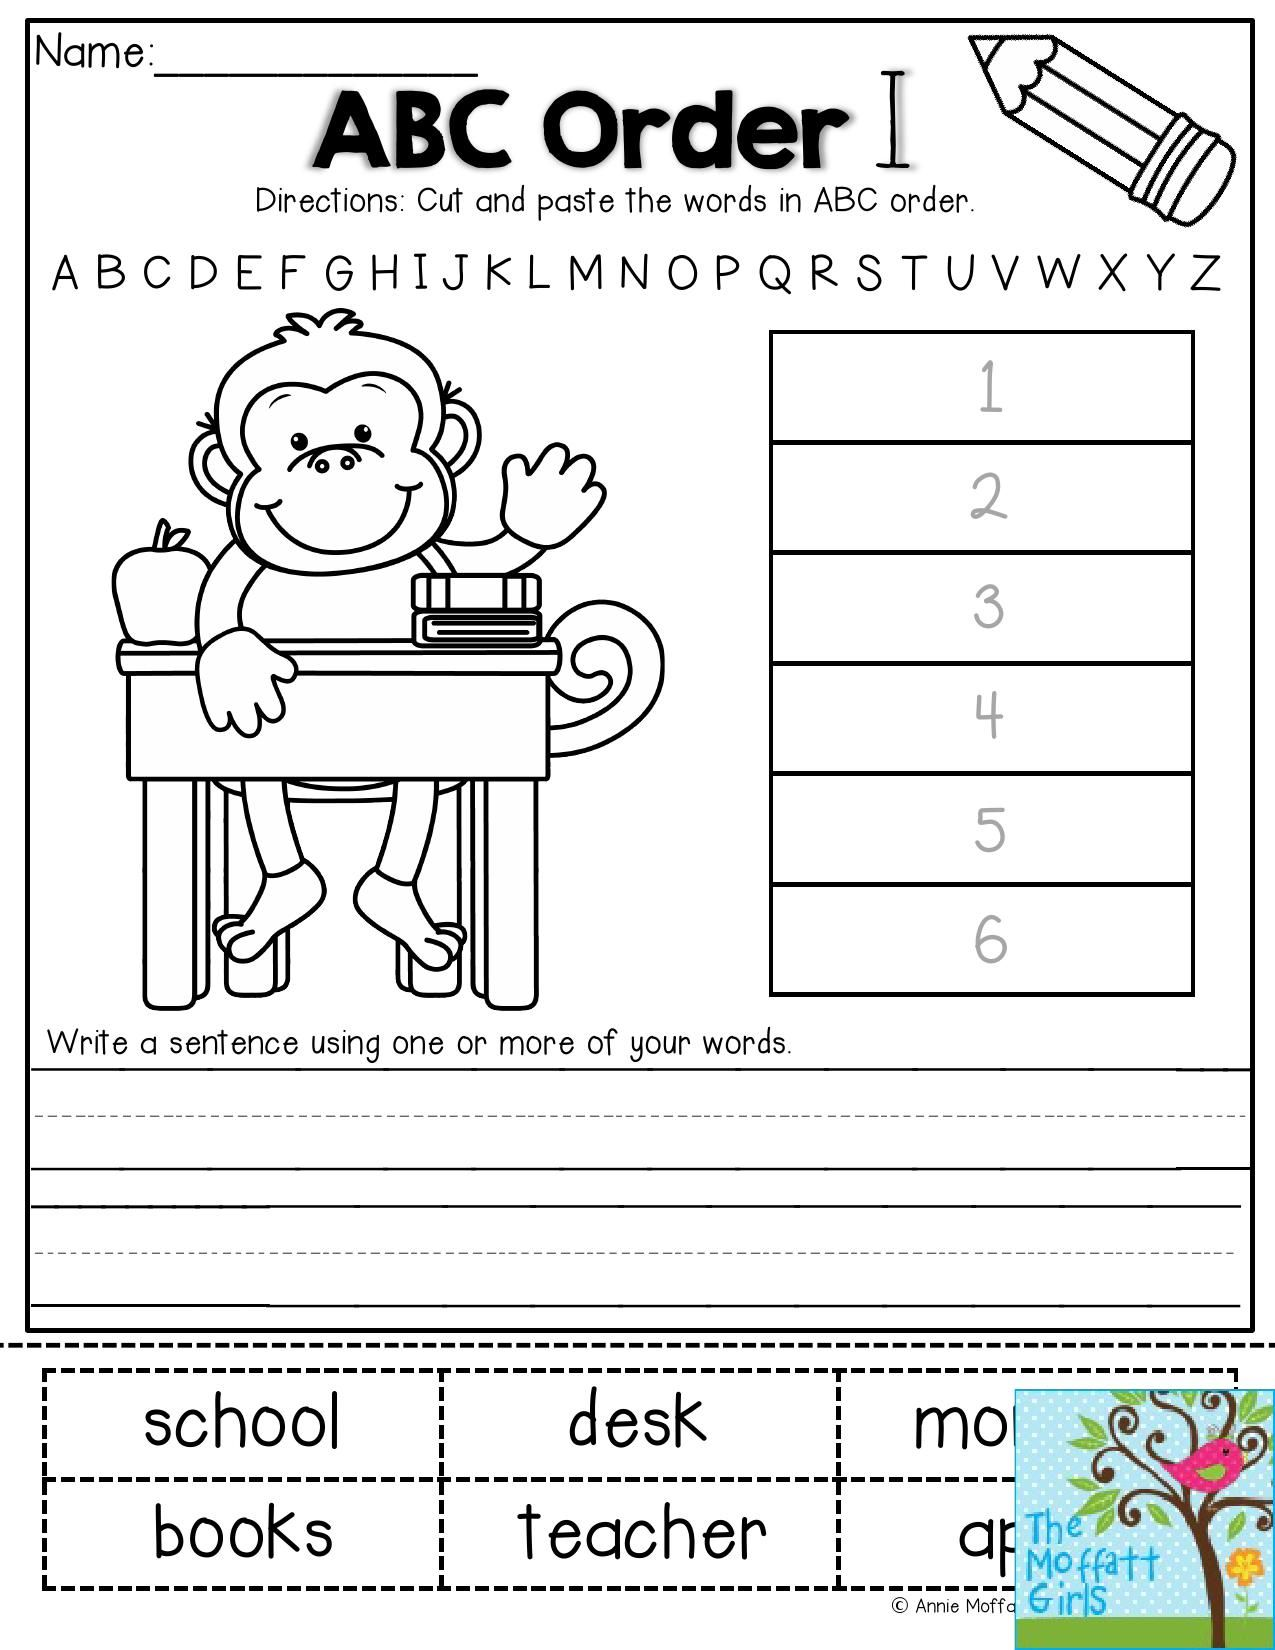 First Letter Worksheet